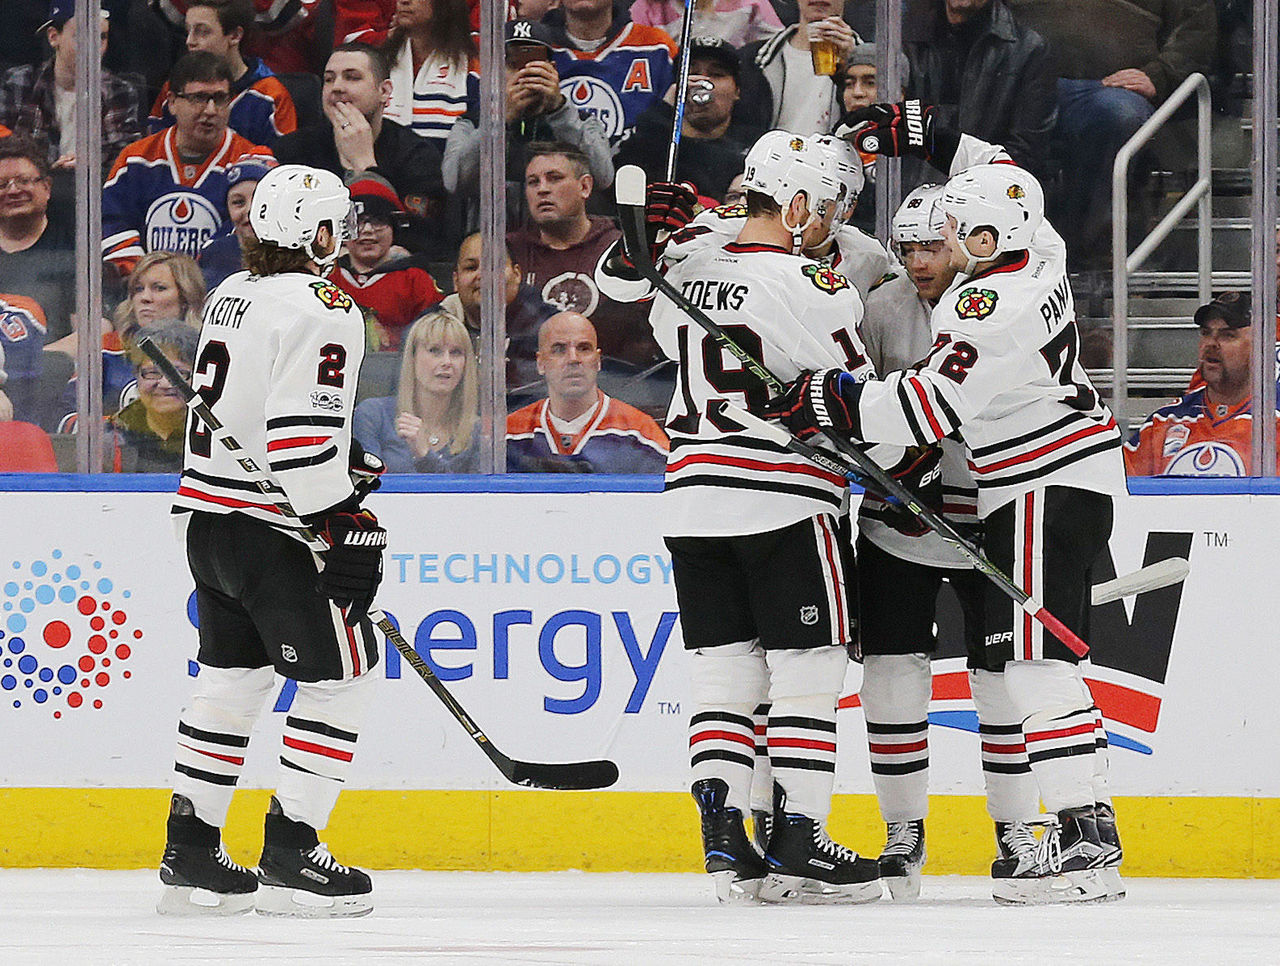 Cropped_2017-02-12t040833z_650247404_nocid_rtrmadp_3_nhl-chicago-blackhawks-at-edmonton-oilers